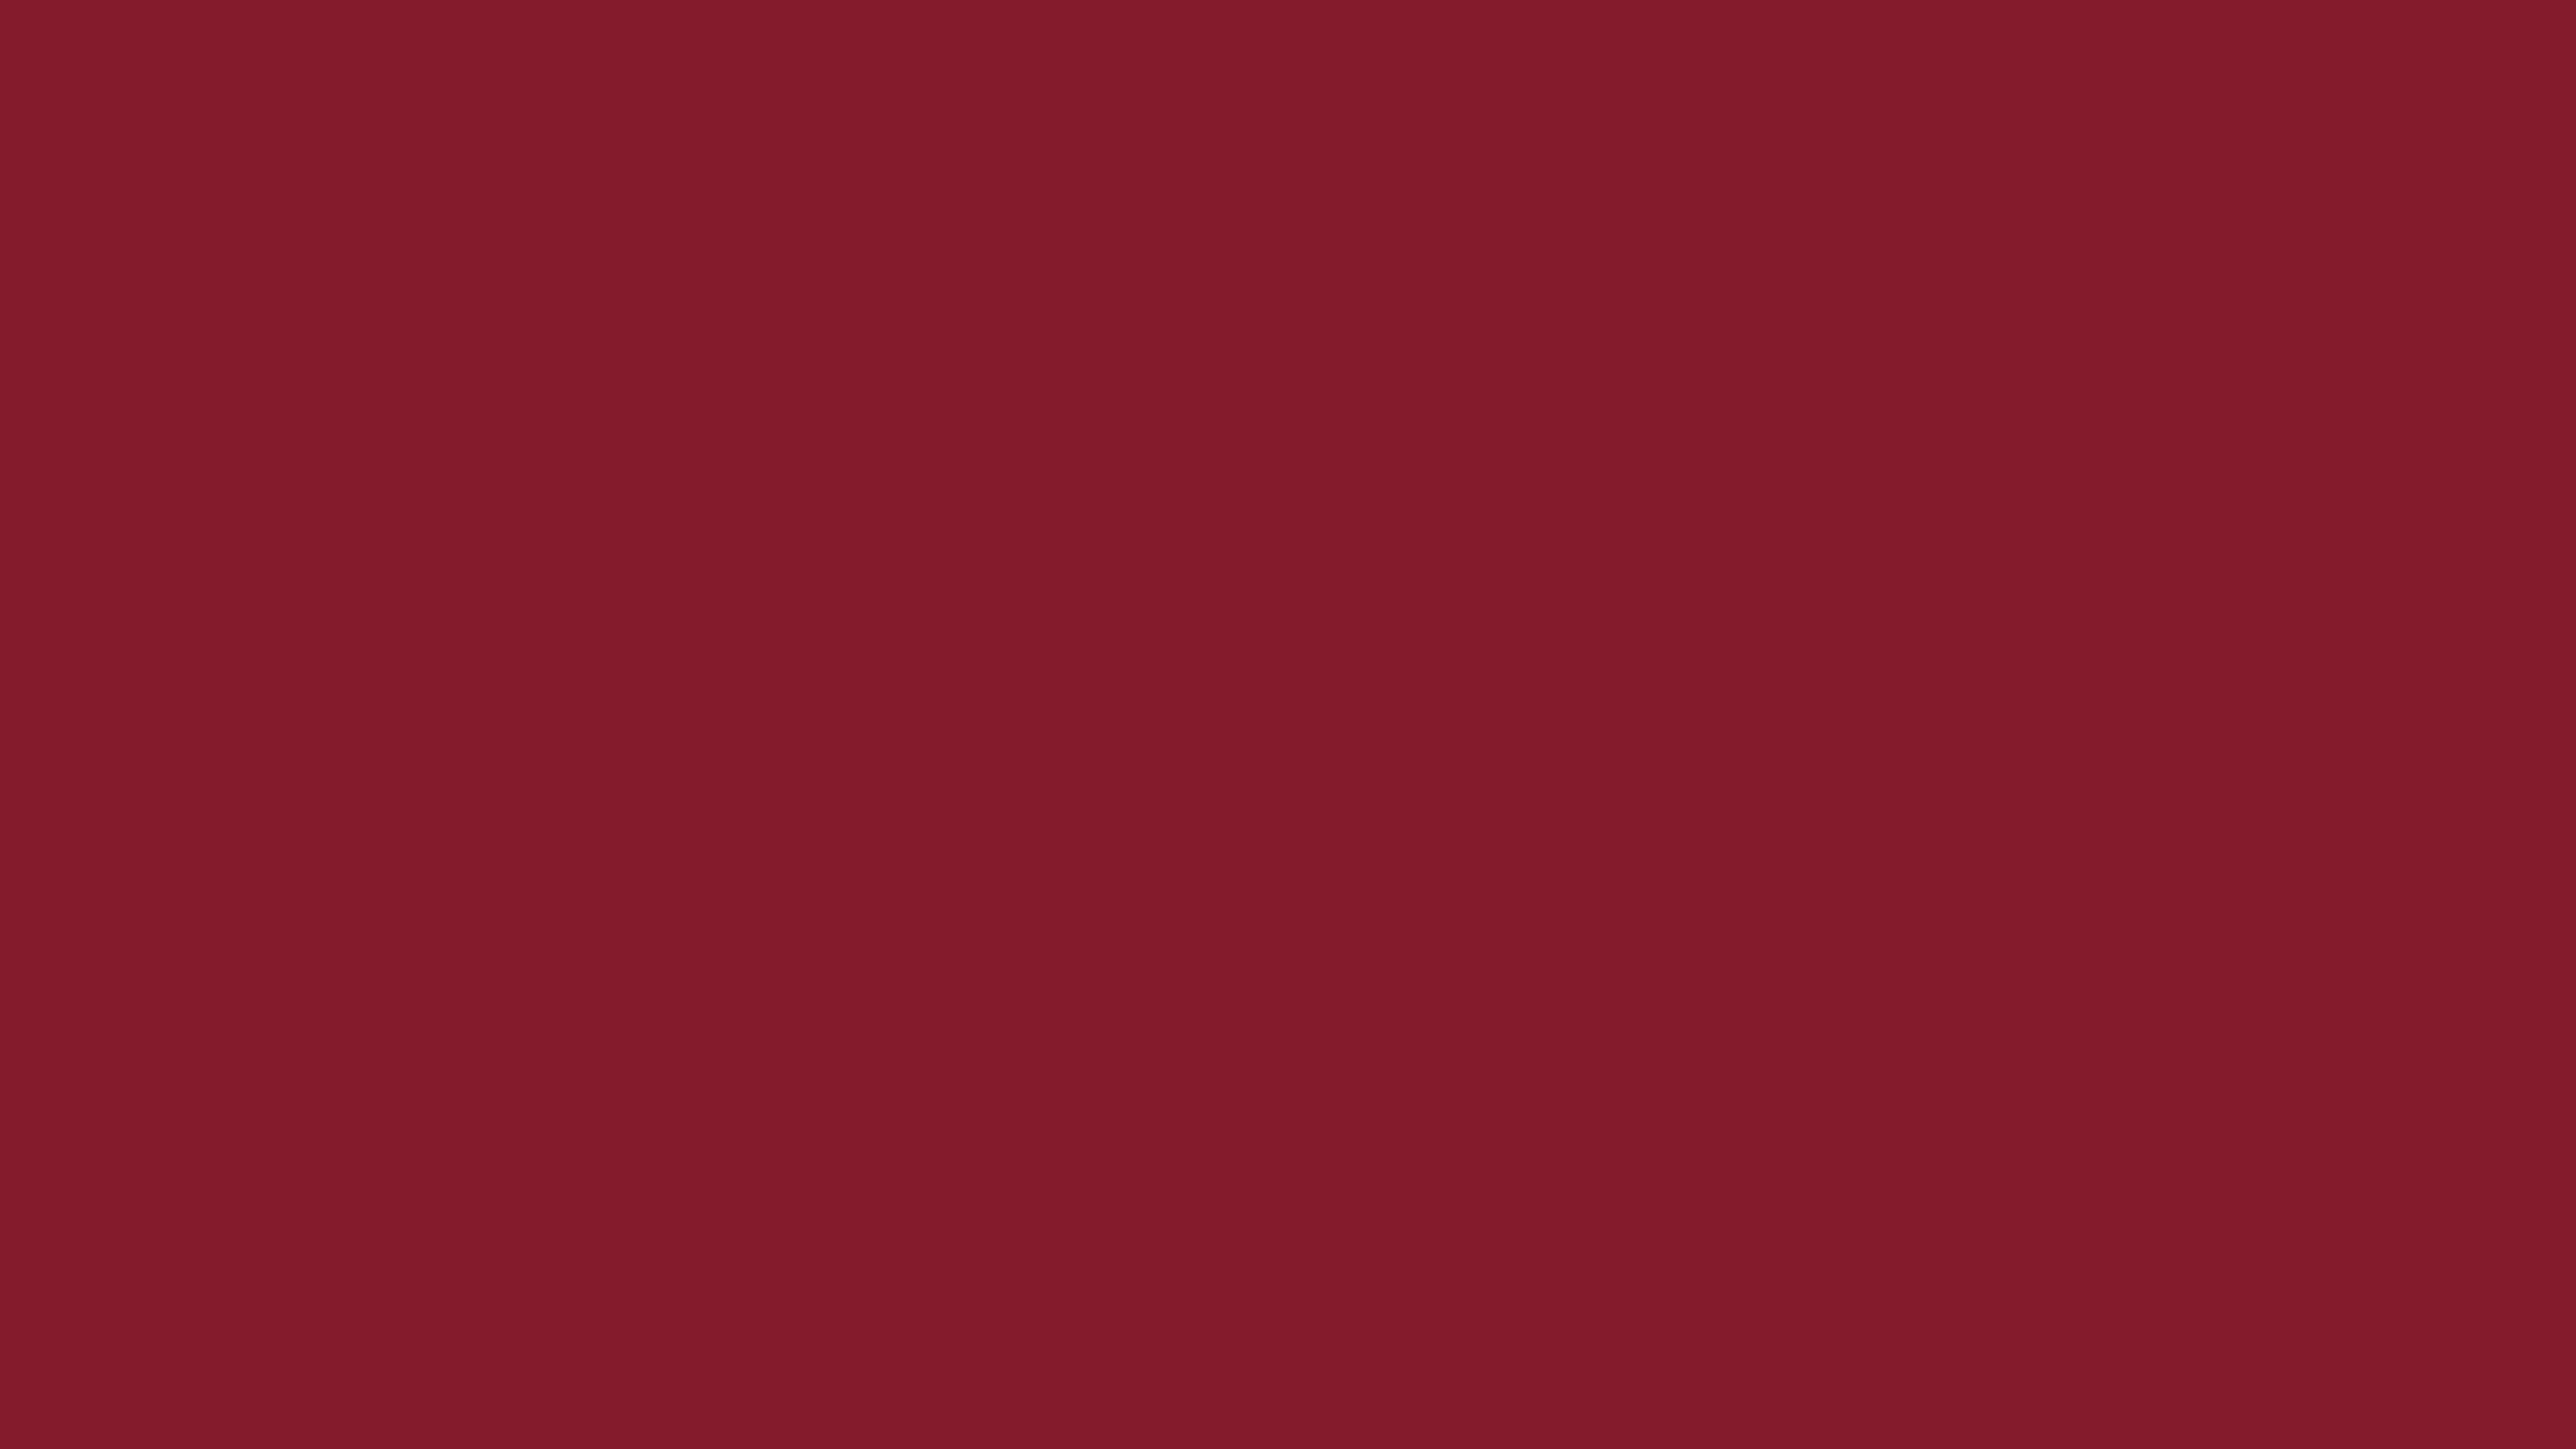 3840x2160 Antique Ruby Solid Color Background